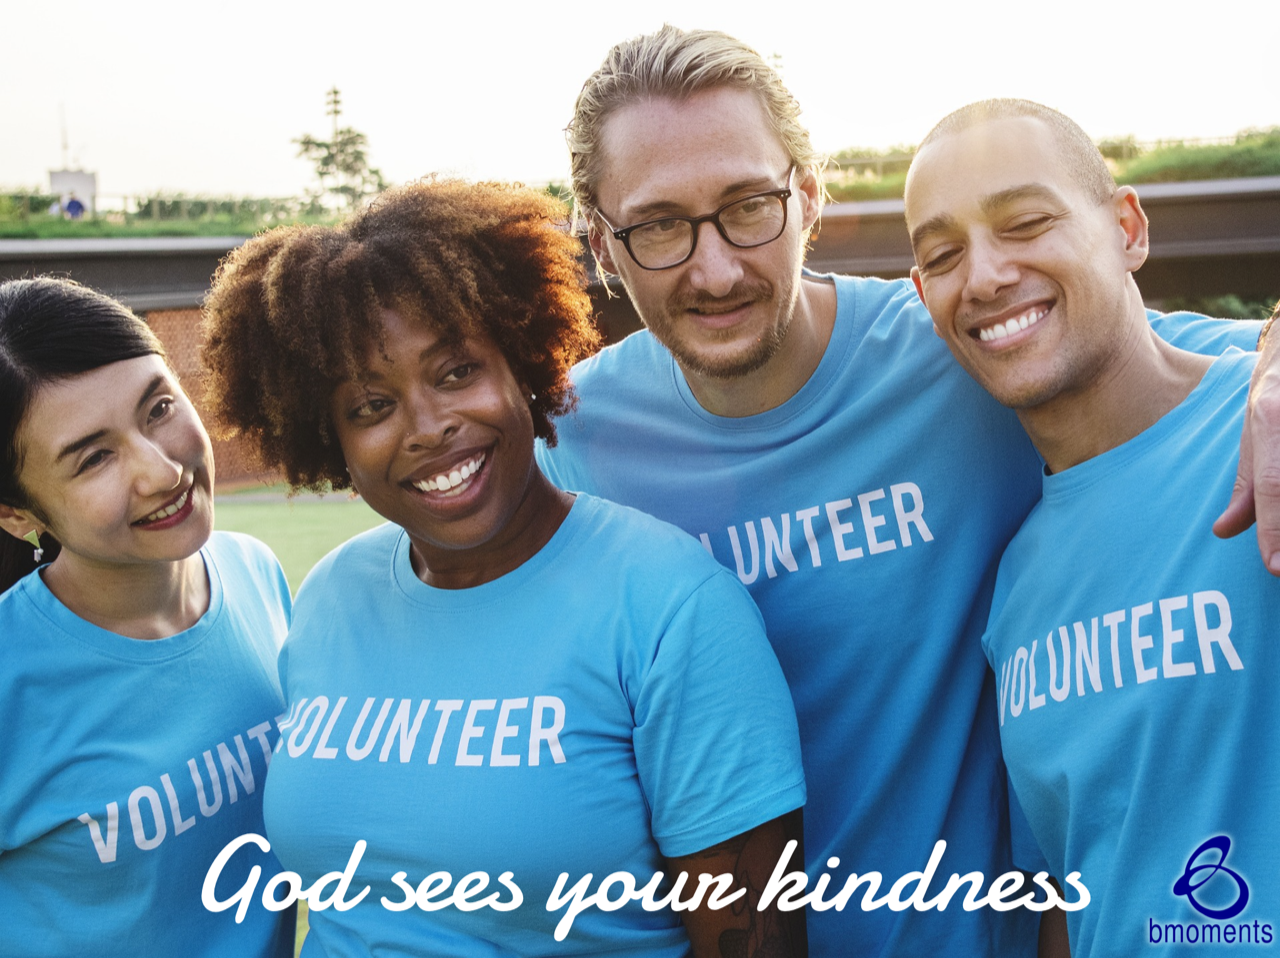 God Will Bless You for Your Acts of Kindness